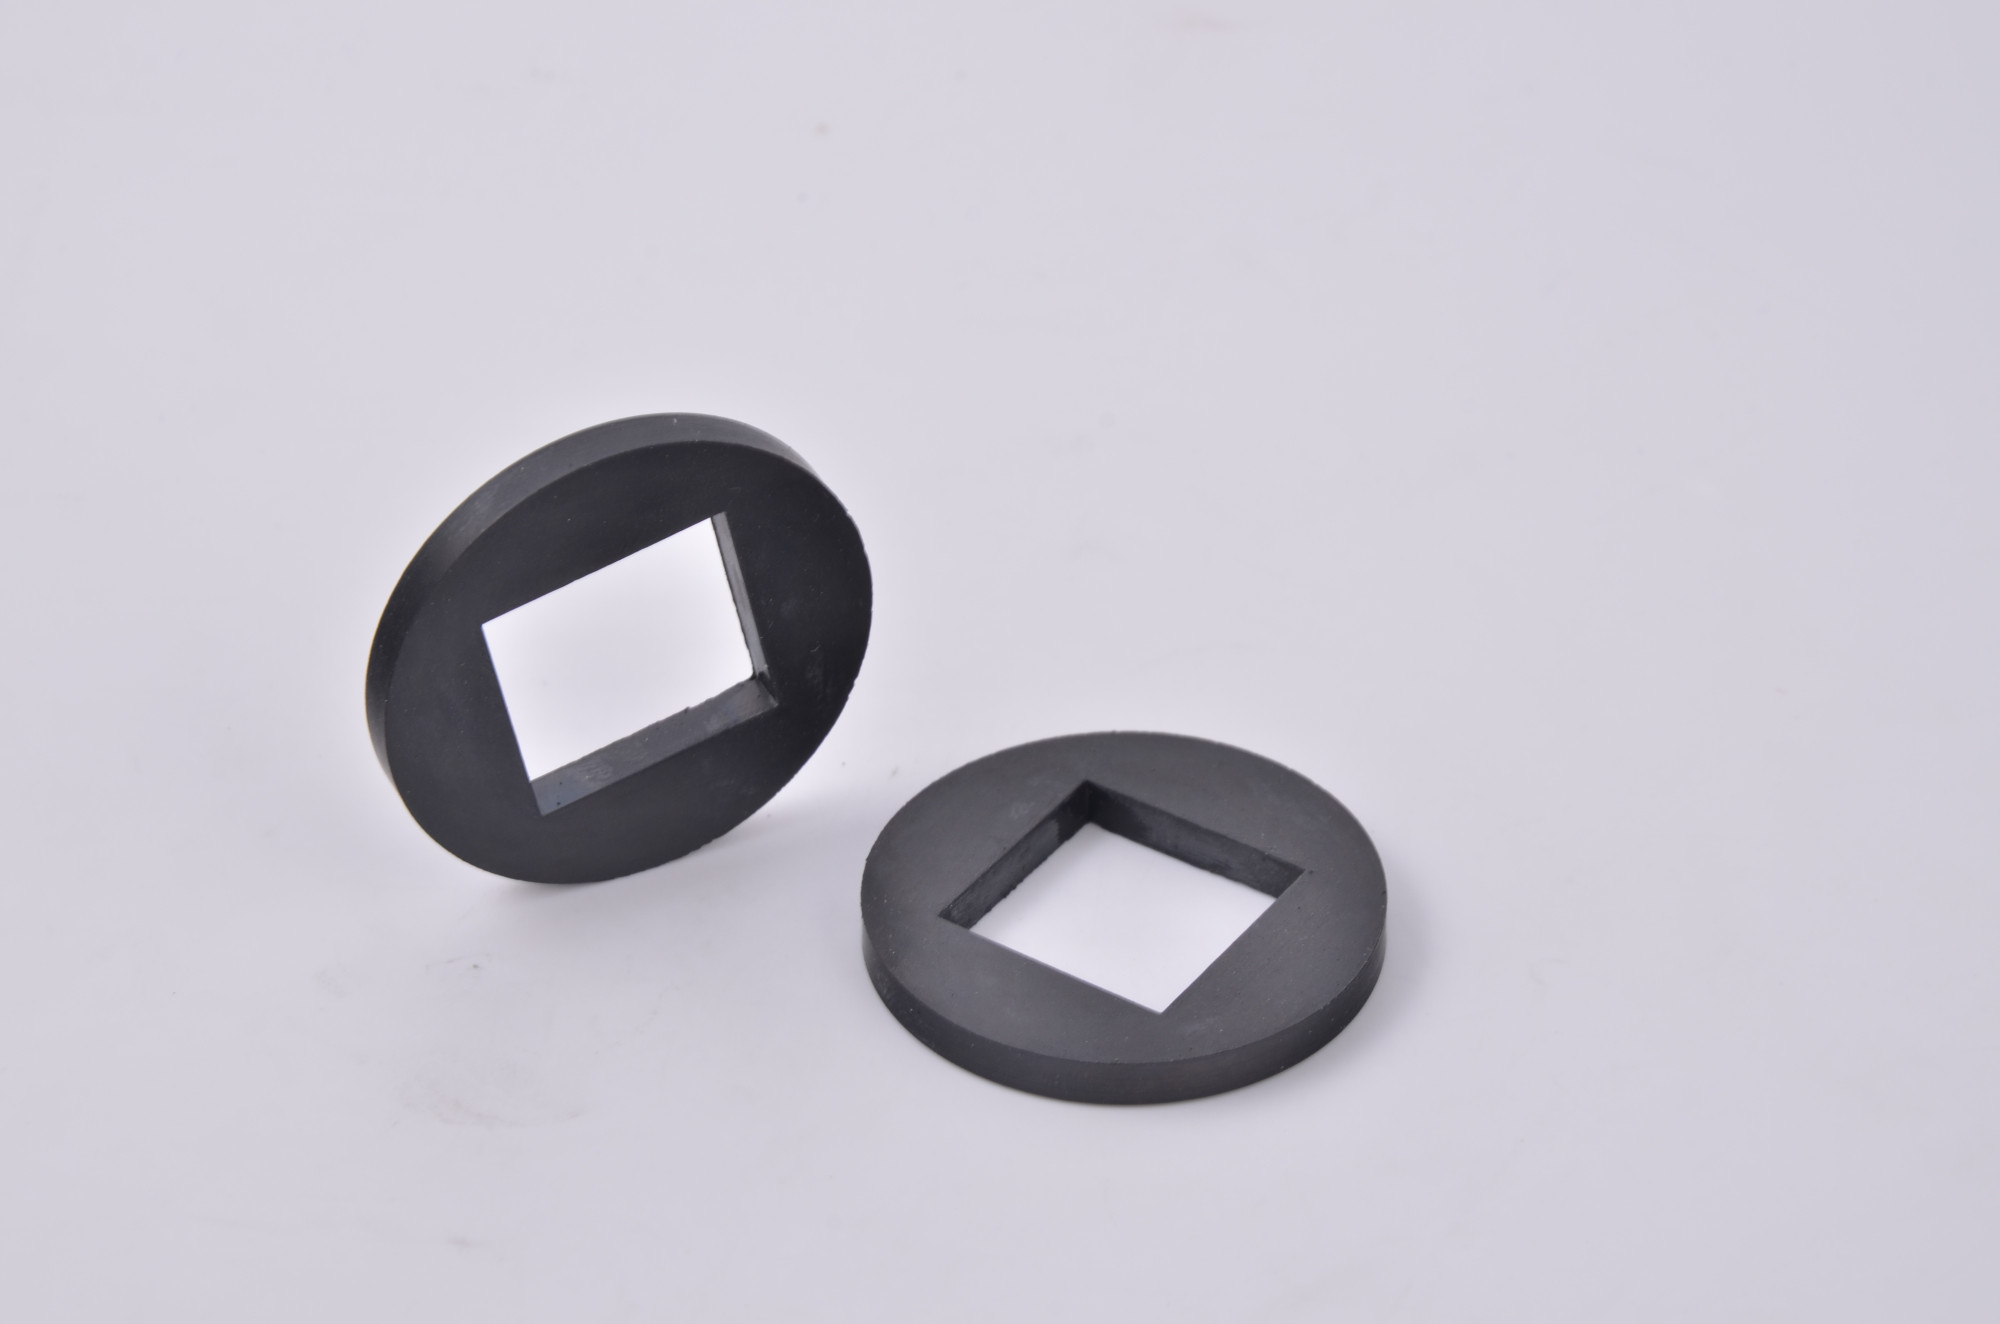 Rubber metal mixing parts